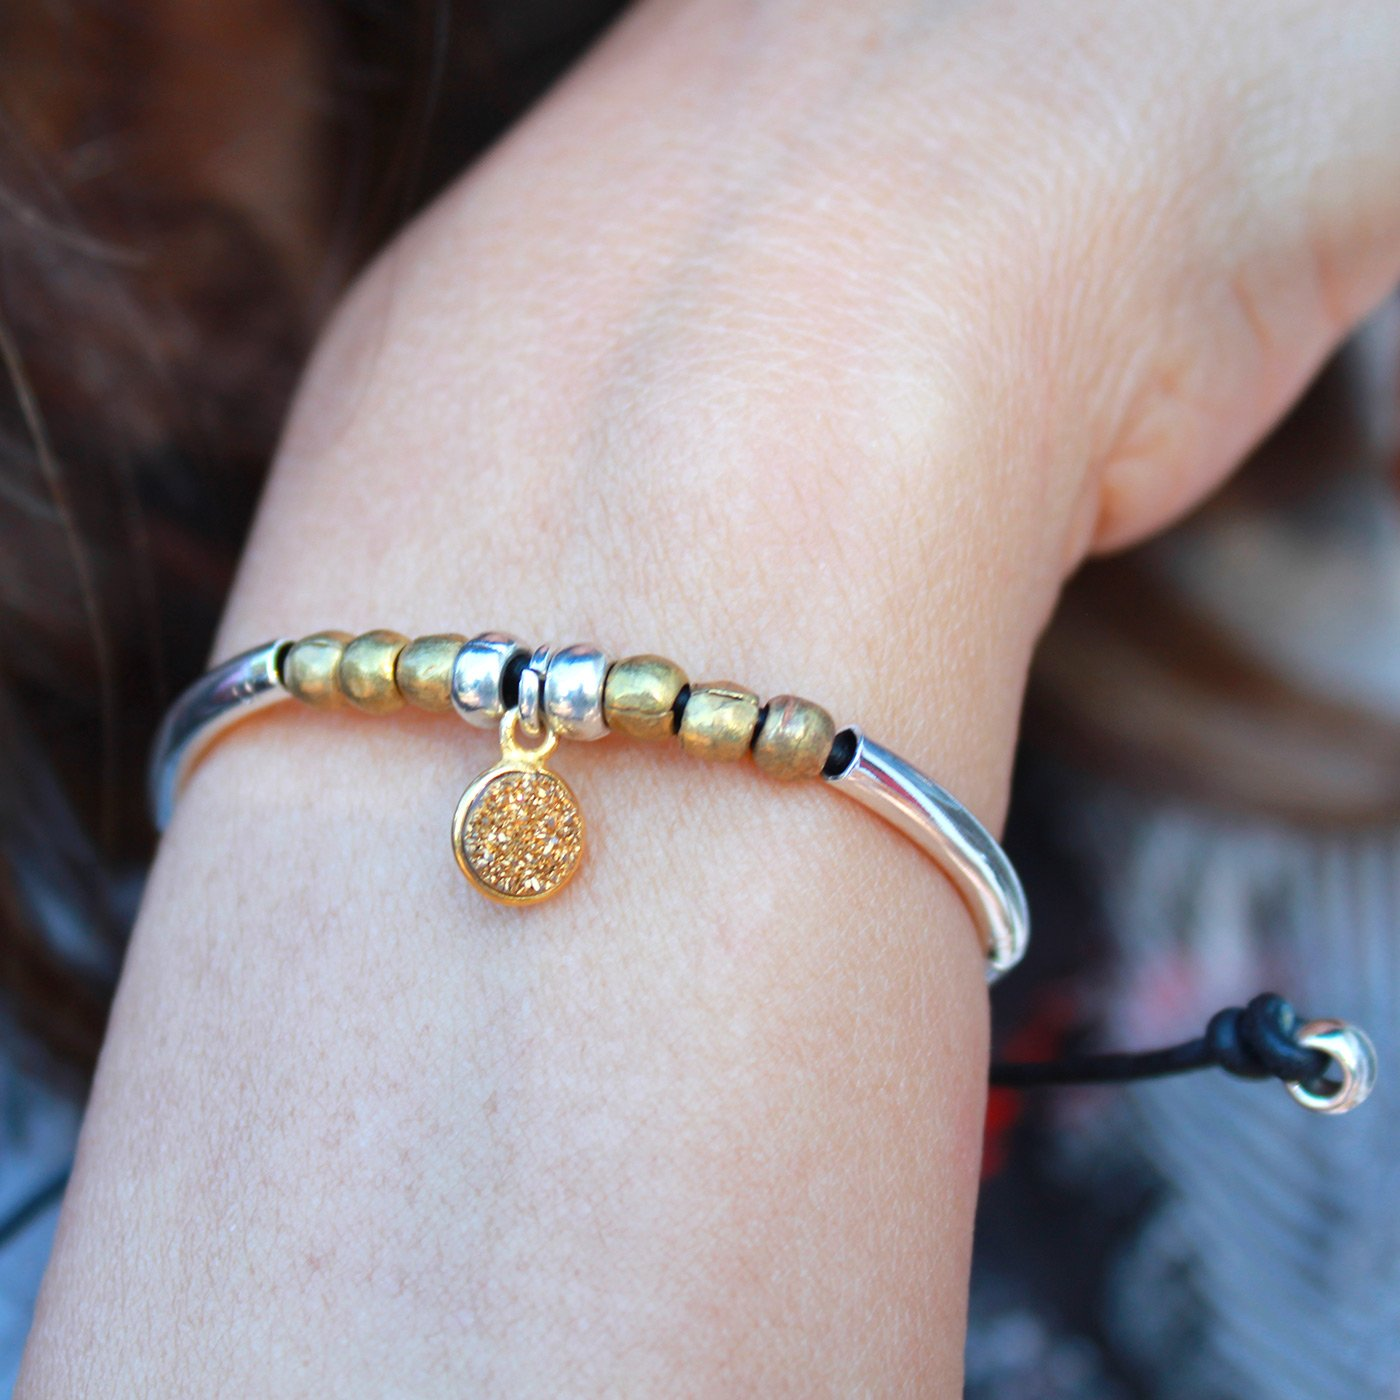 Lizzy James Healing Single Strand Adjustable Silver and Rose Gold Plated Black Leather Charm Bracelet w Round Cross Charm